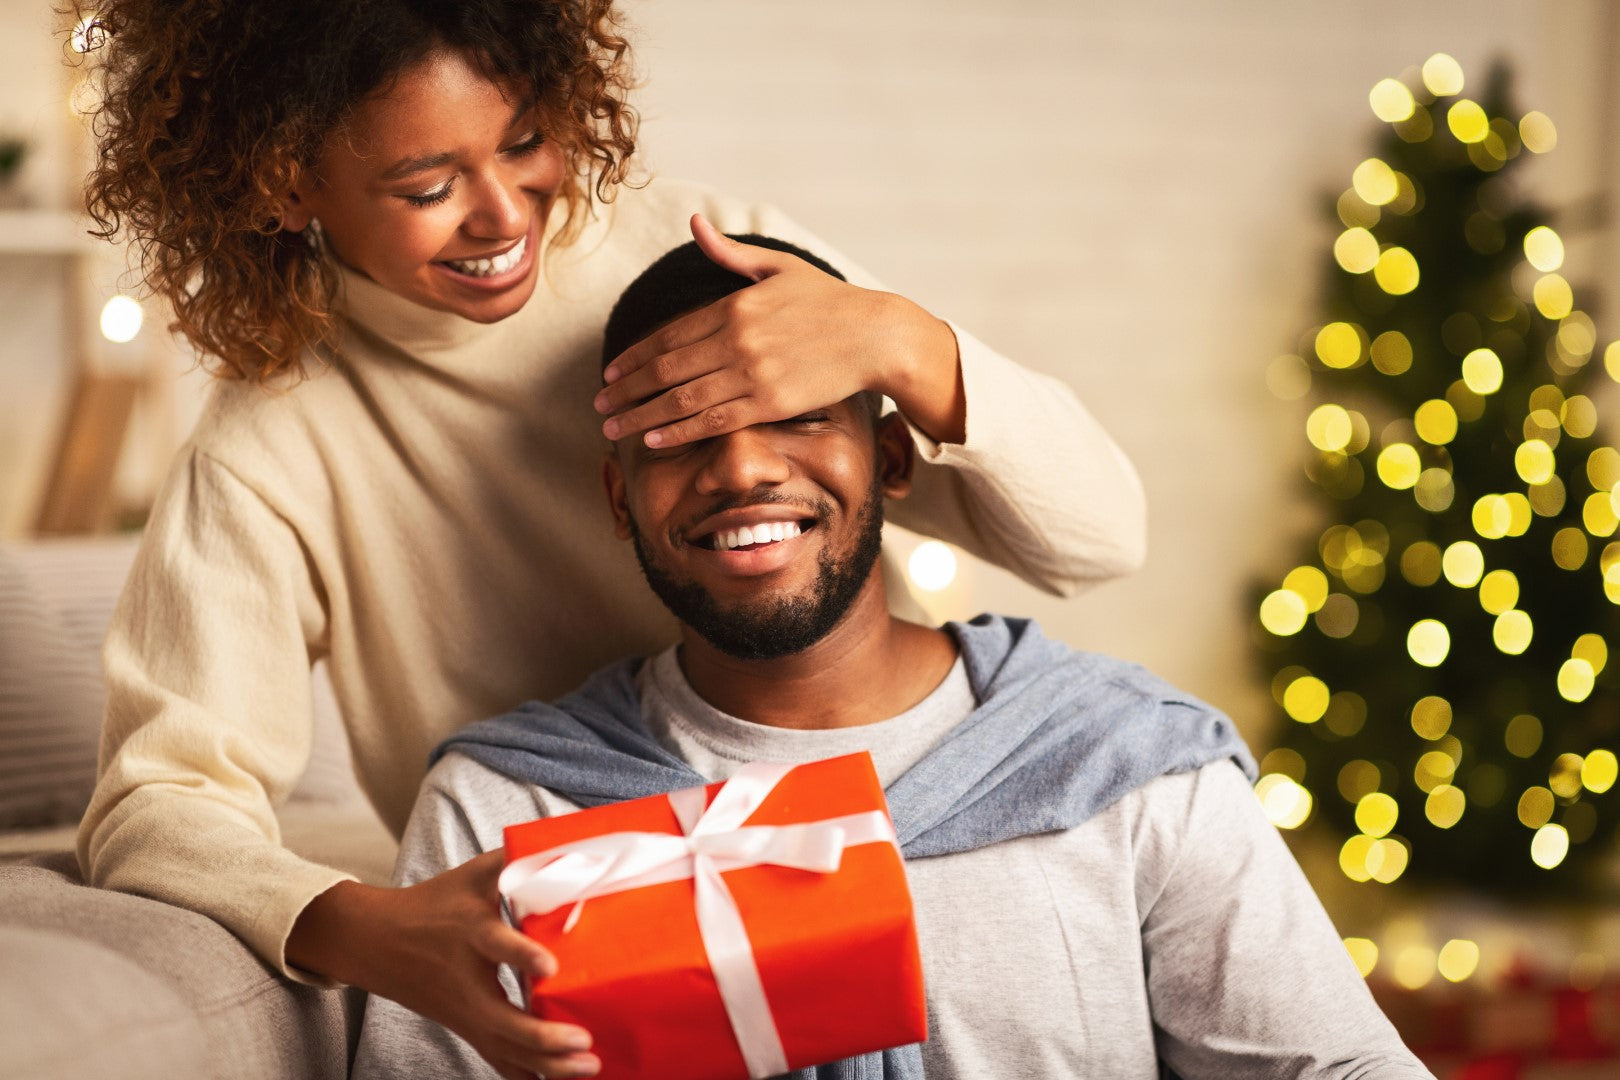 surprise-loving-wife-giving-pesonalised-gift-jewellery-to-him-uk-content-image